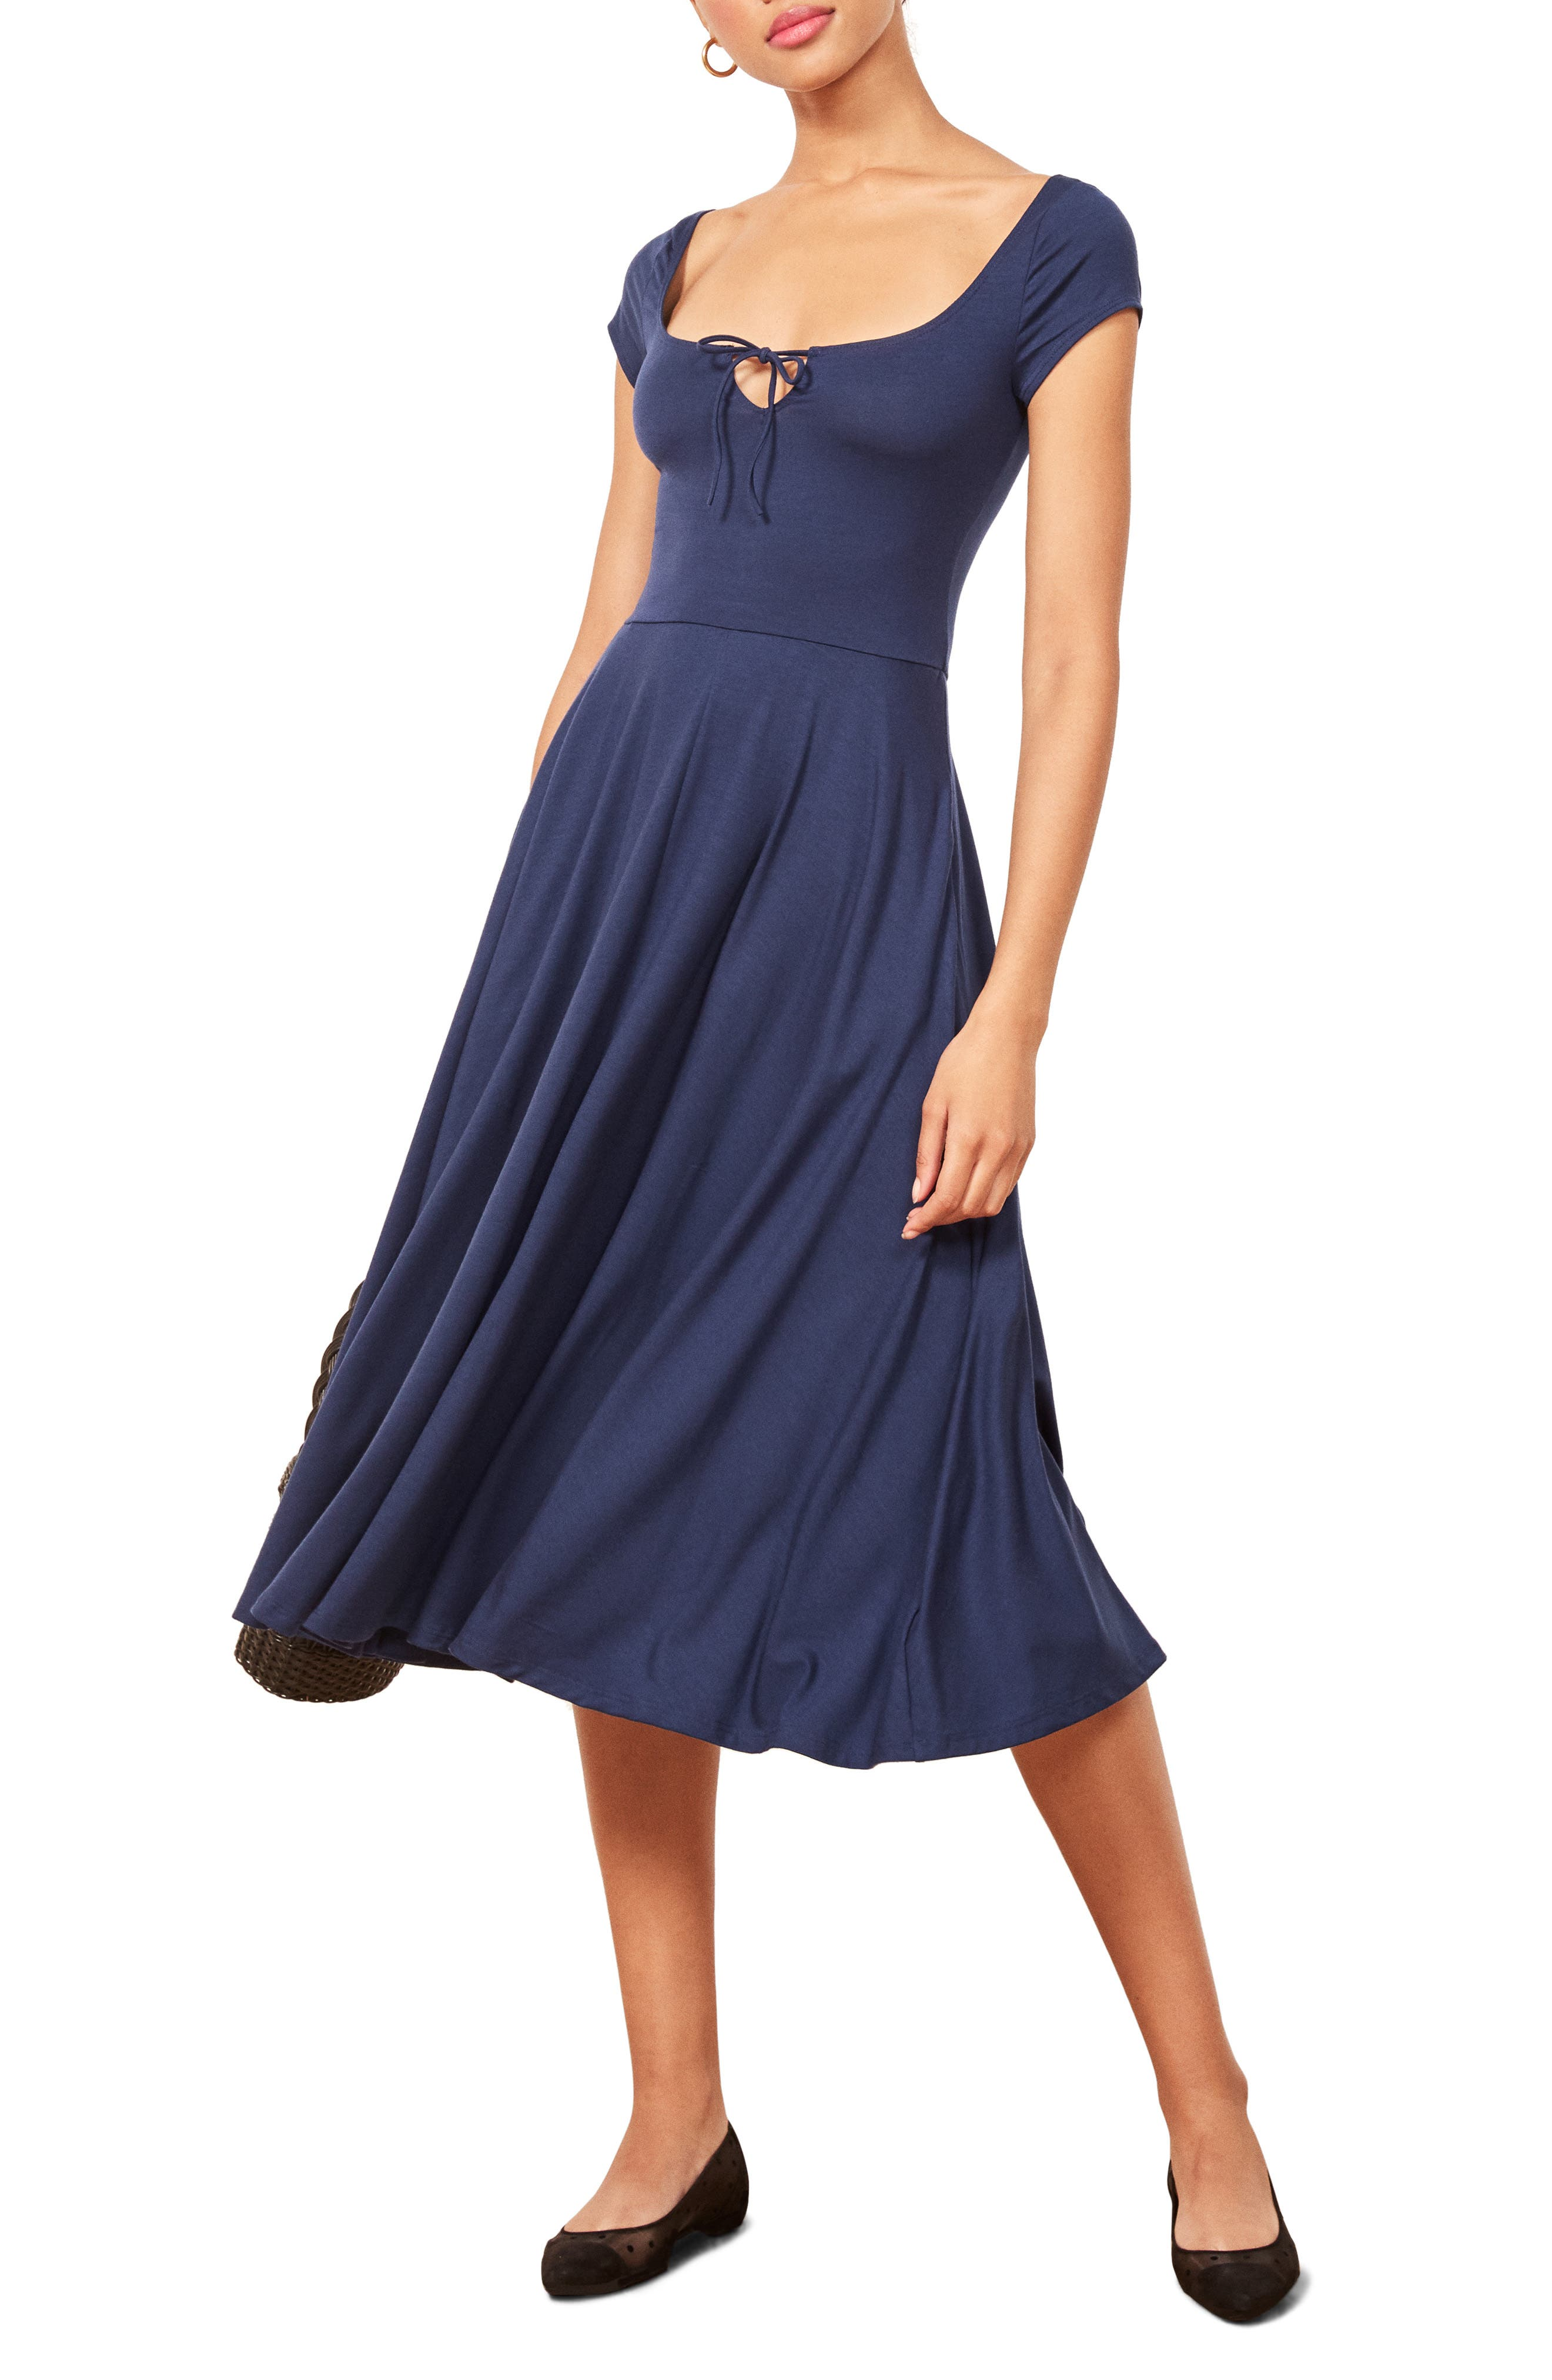 Krista Dress,                             Main thumbnail 1, color,                             NAVY